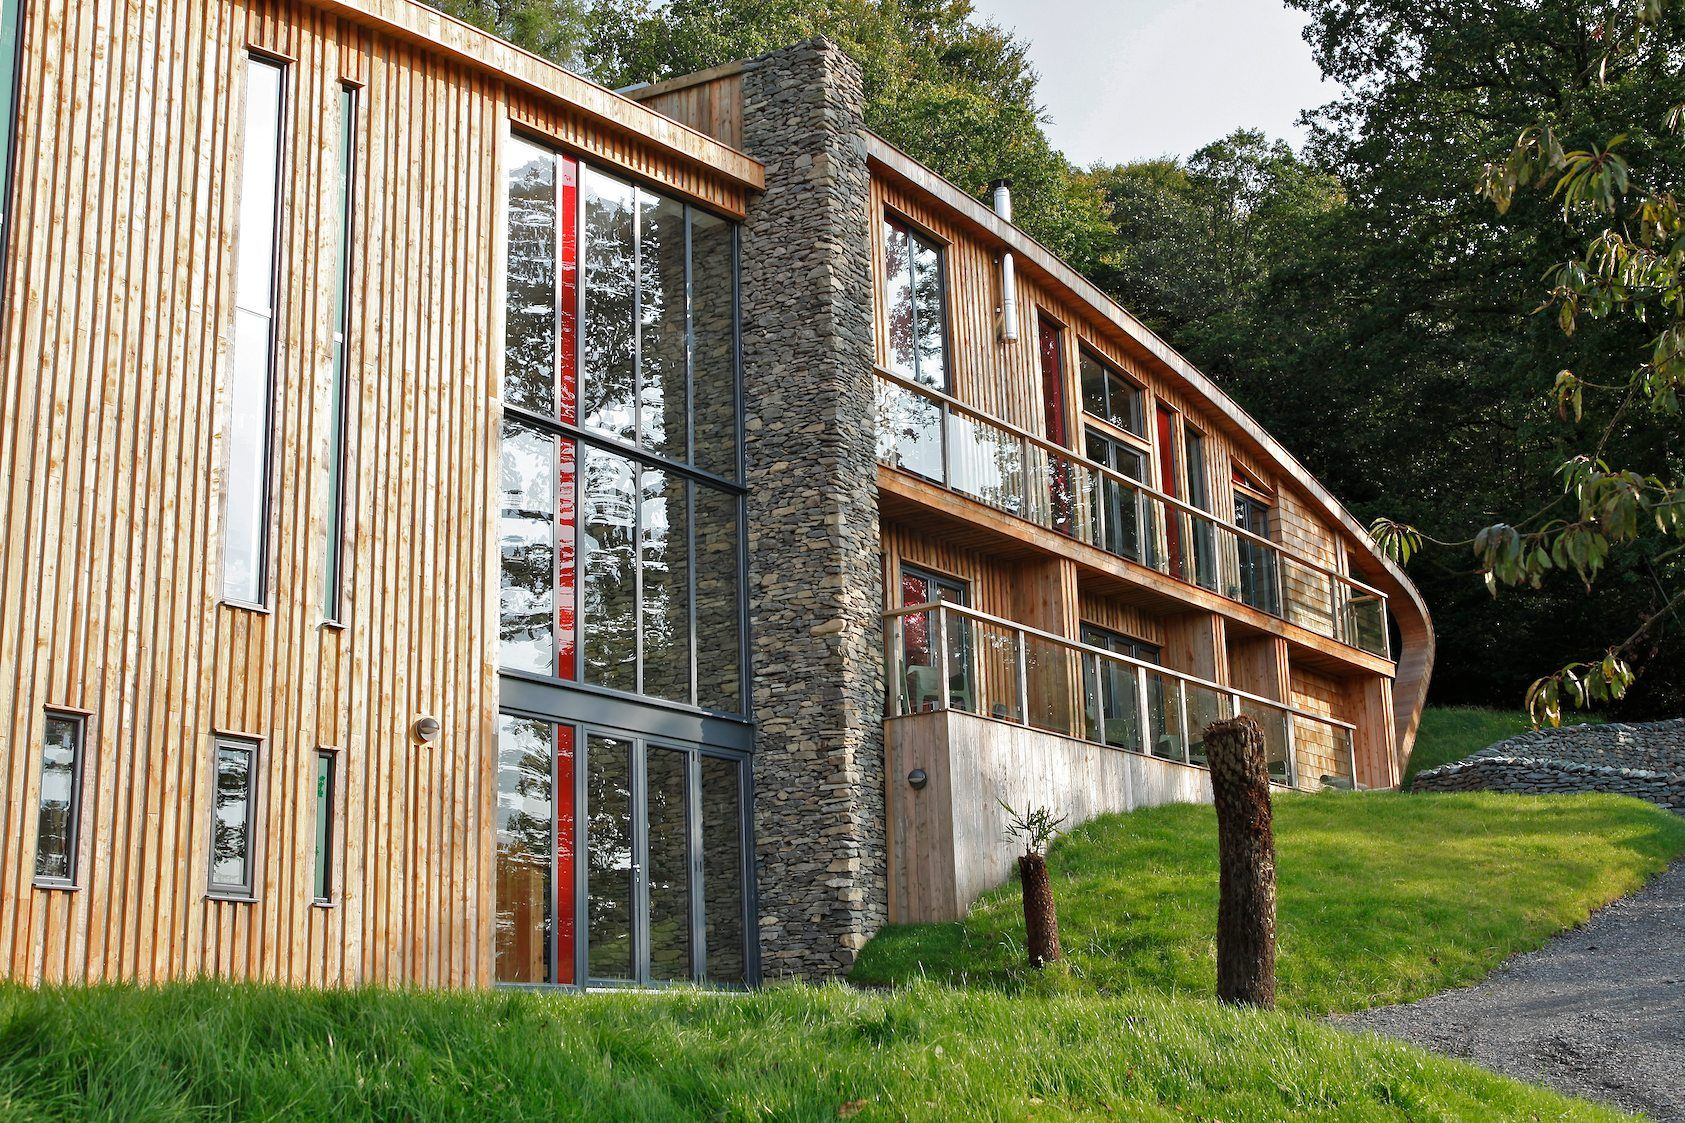 Featured on TV Lake house, Grand designs, Express bi